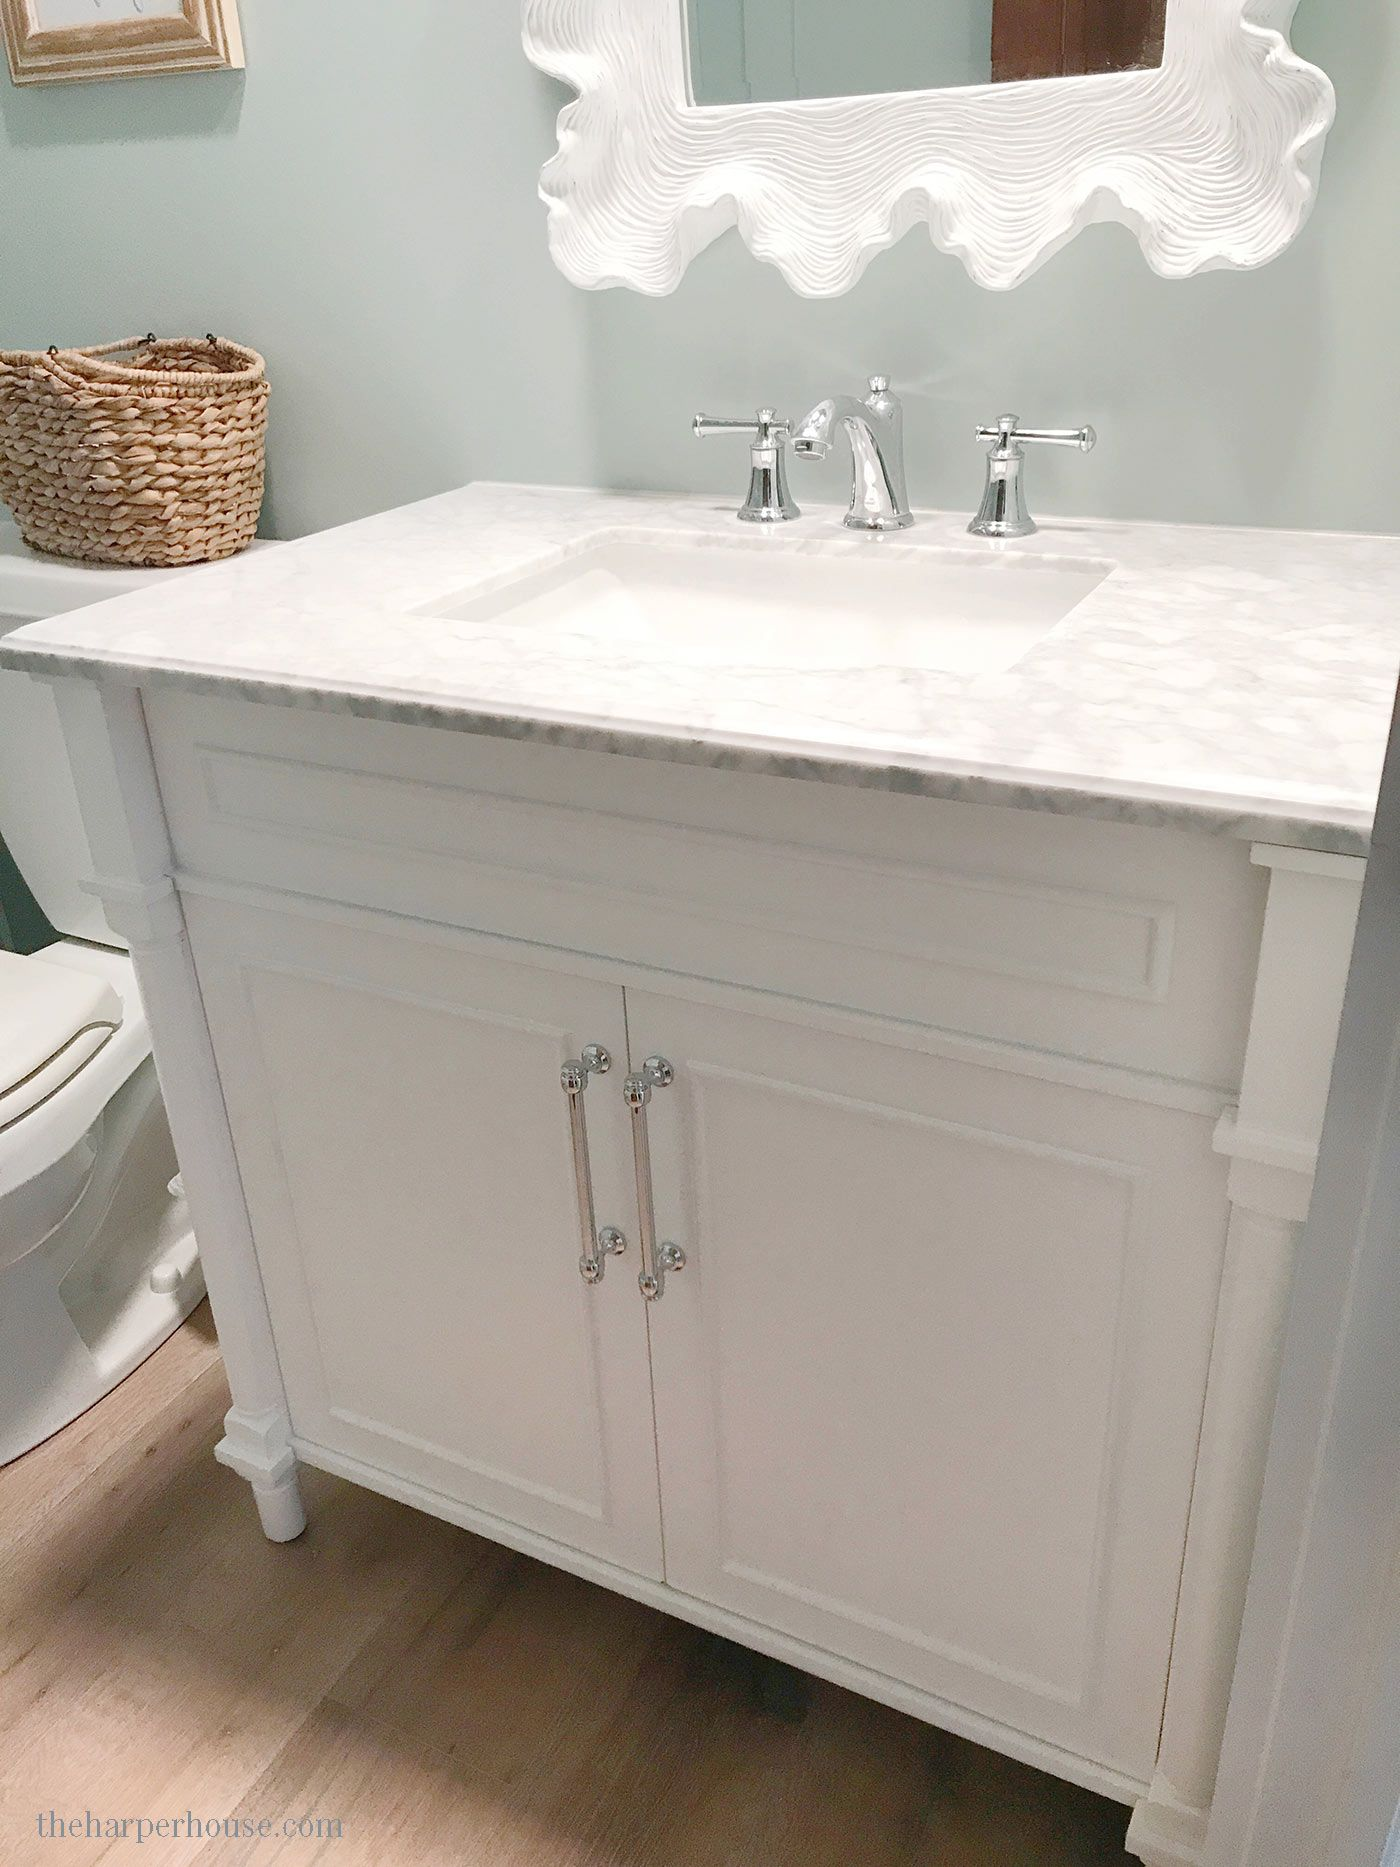 The Ultimate Guide To Buying A Bathroom Vanity With Images Bathroom Vanity Units Custom Bathroom Vanity Bathroom Cabinets